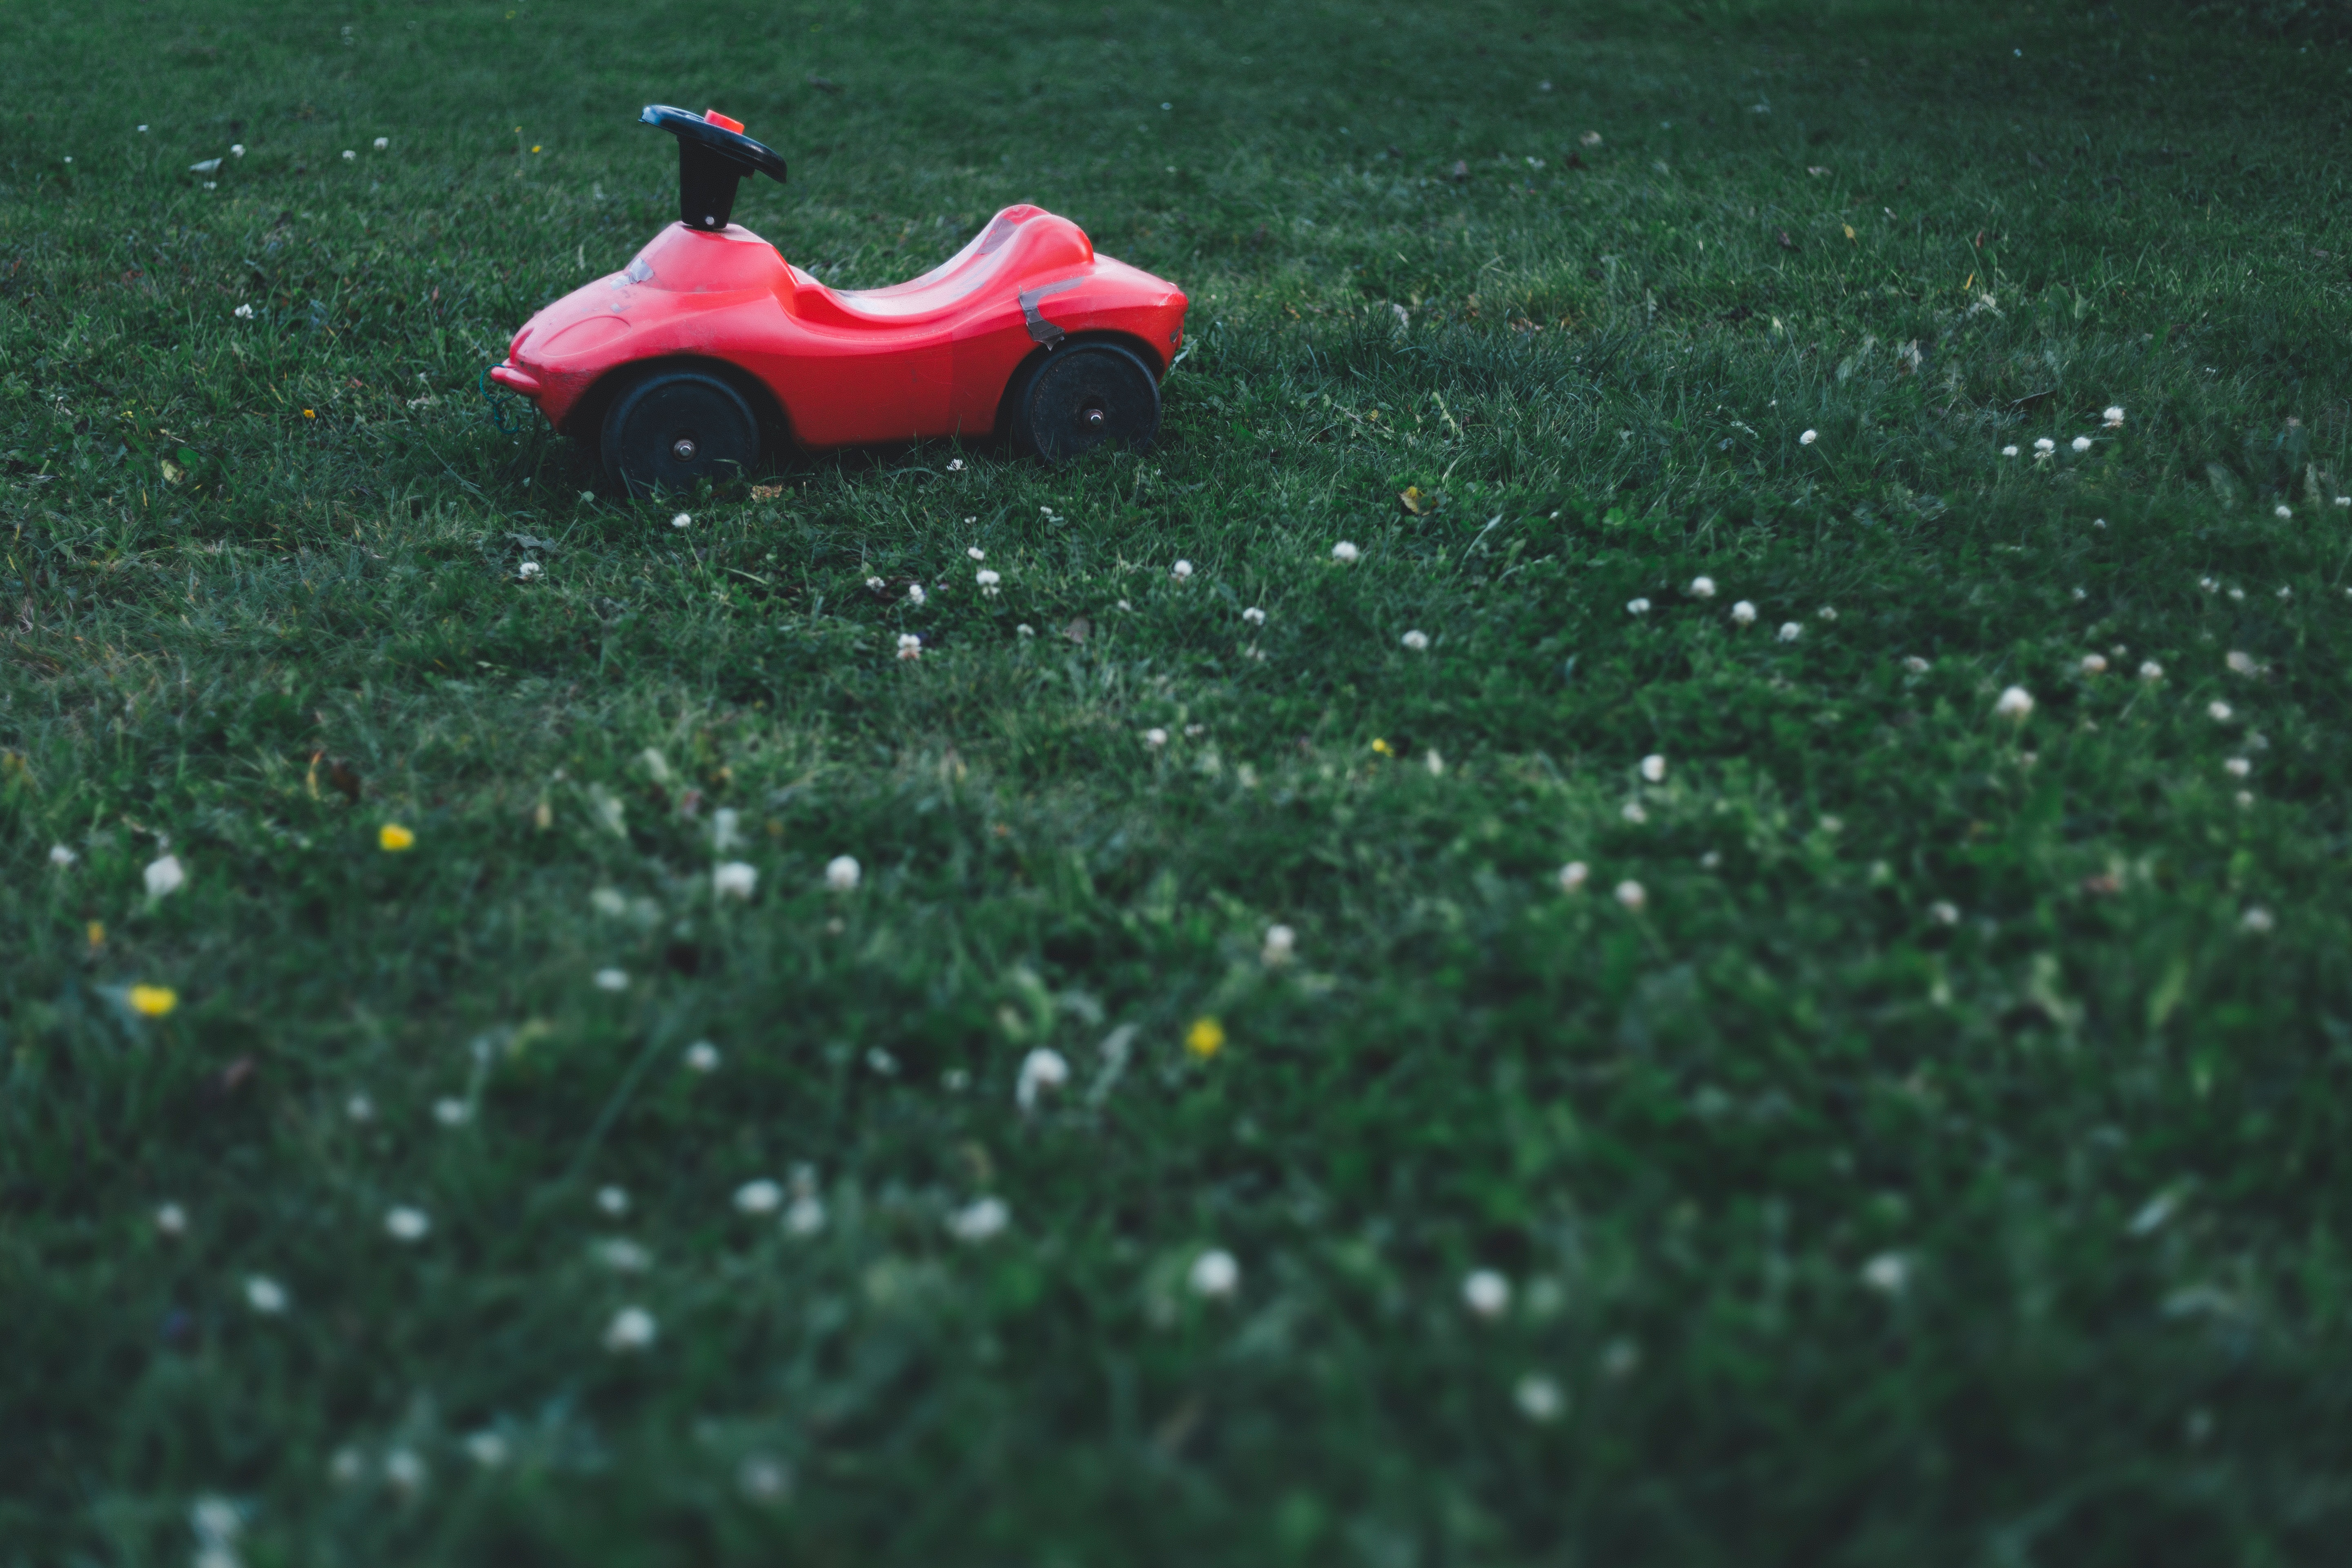 Selective Focus Photography of Red Ride on Toy, Garden, Grass, Landscape, Lawn, HQ Photo